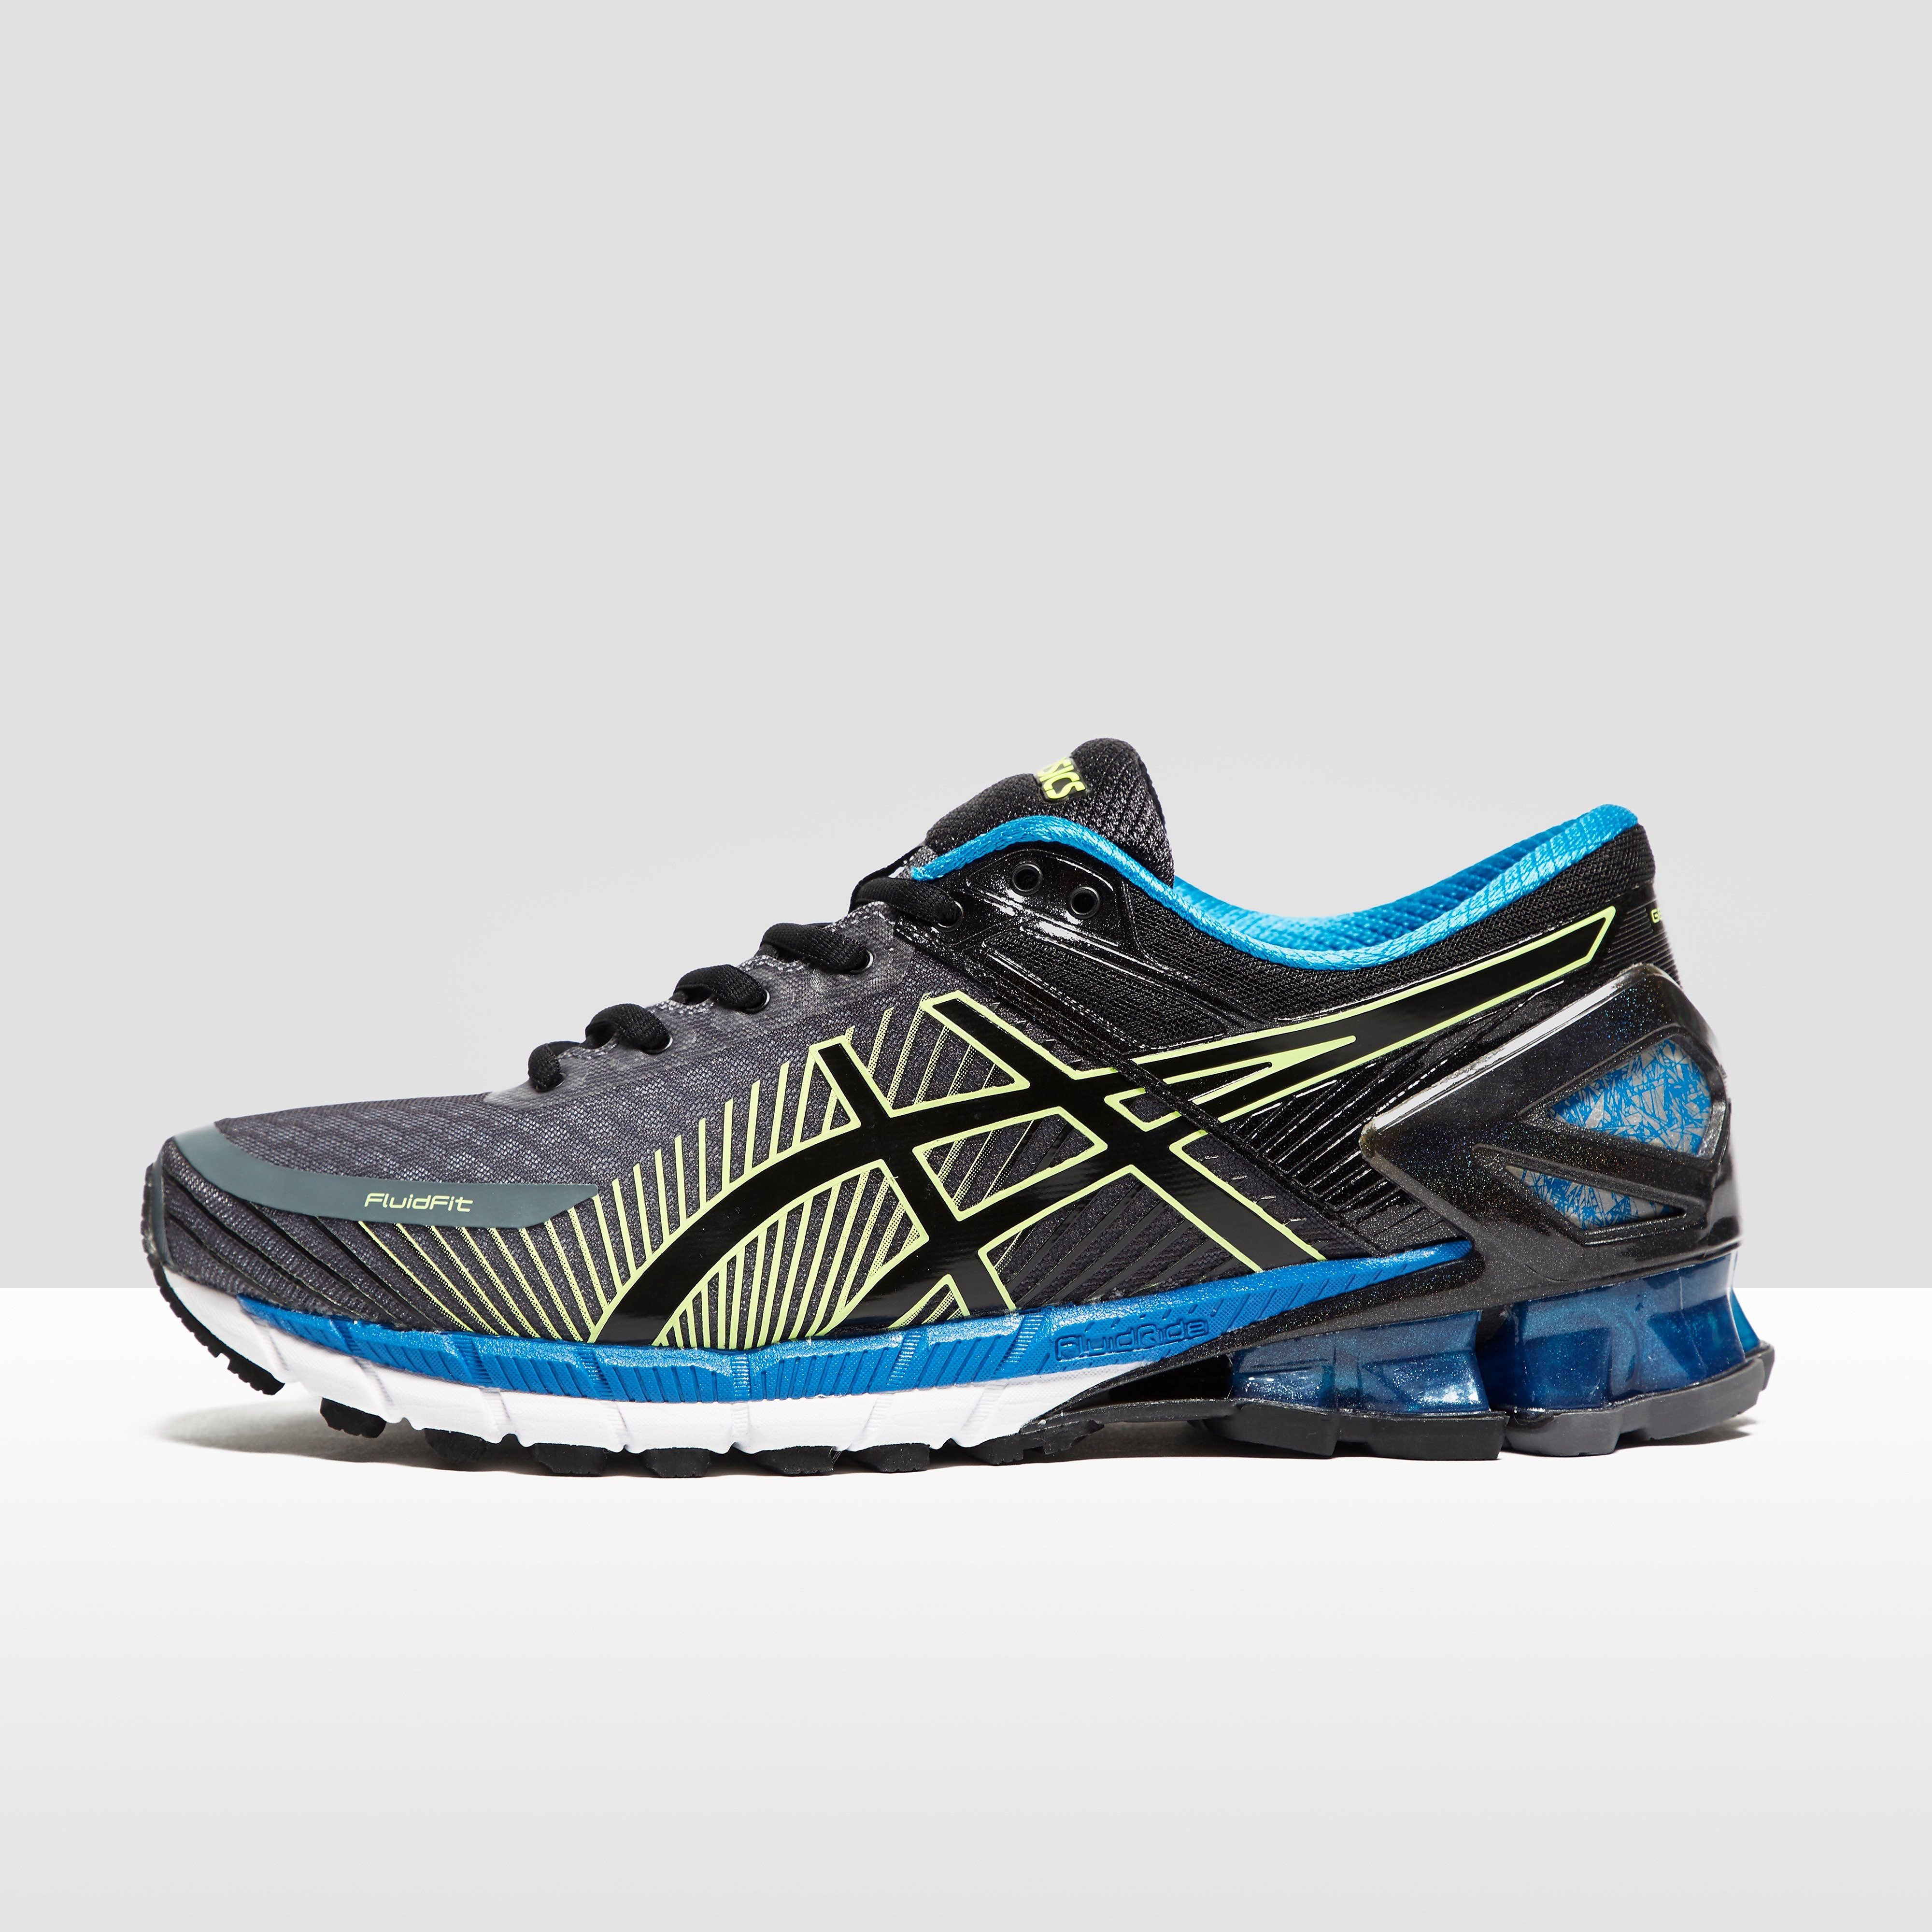 Asics GEL- Kinsei 6 Men's Running Shoes